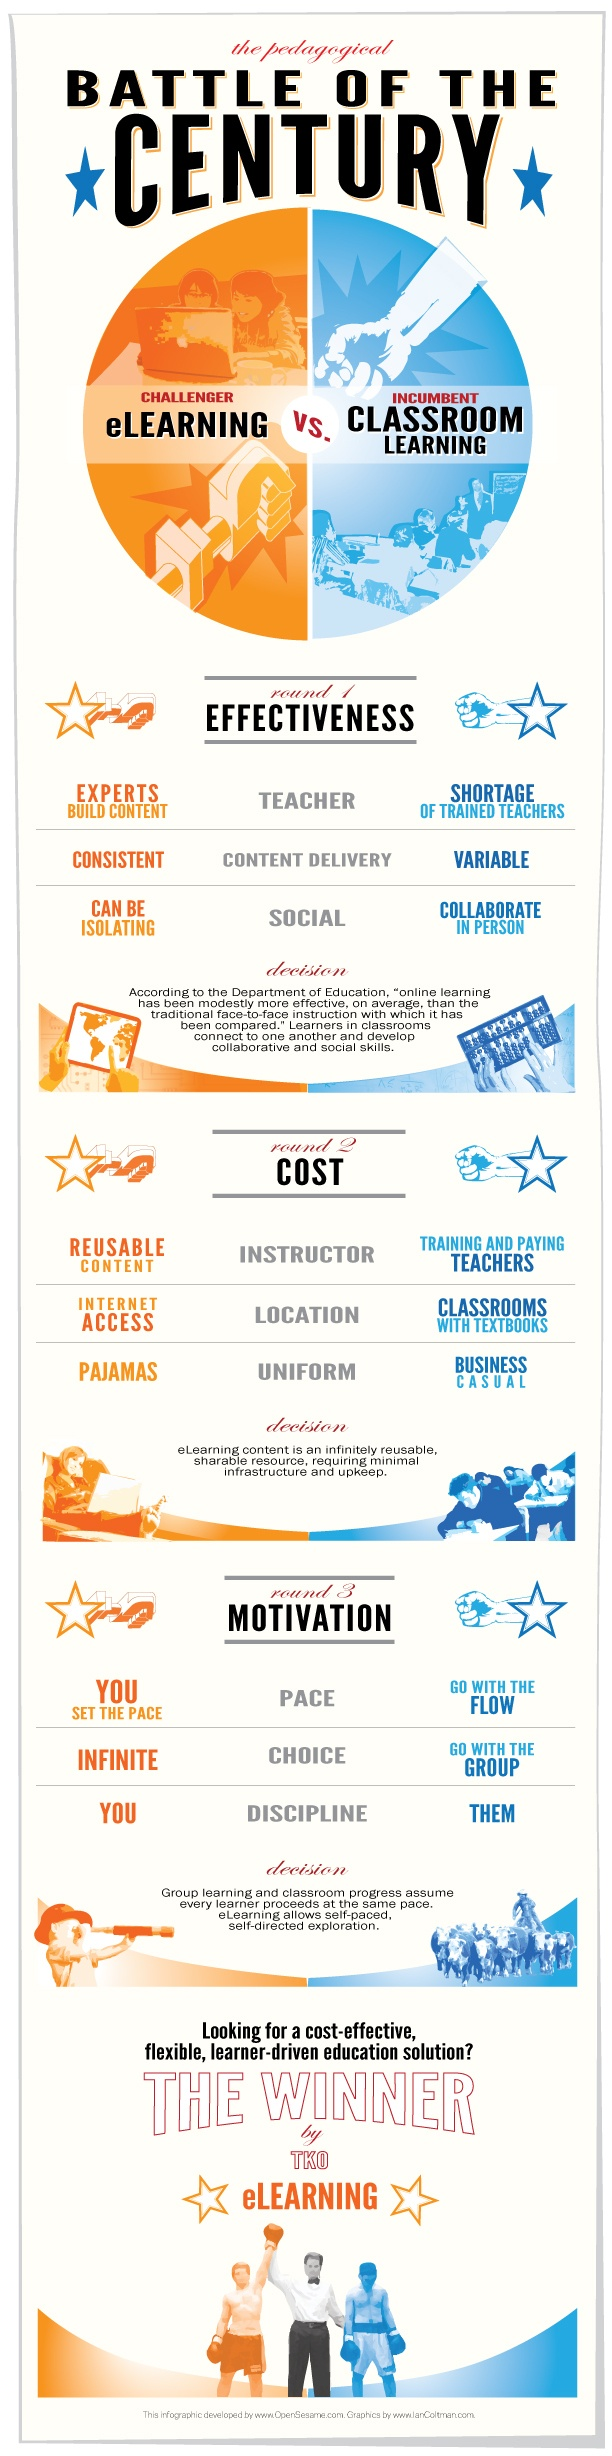 eLearning vs Classroom Learning Infographic